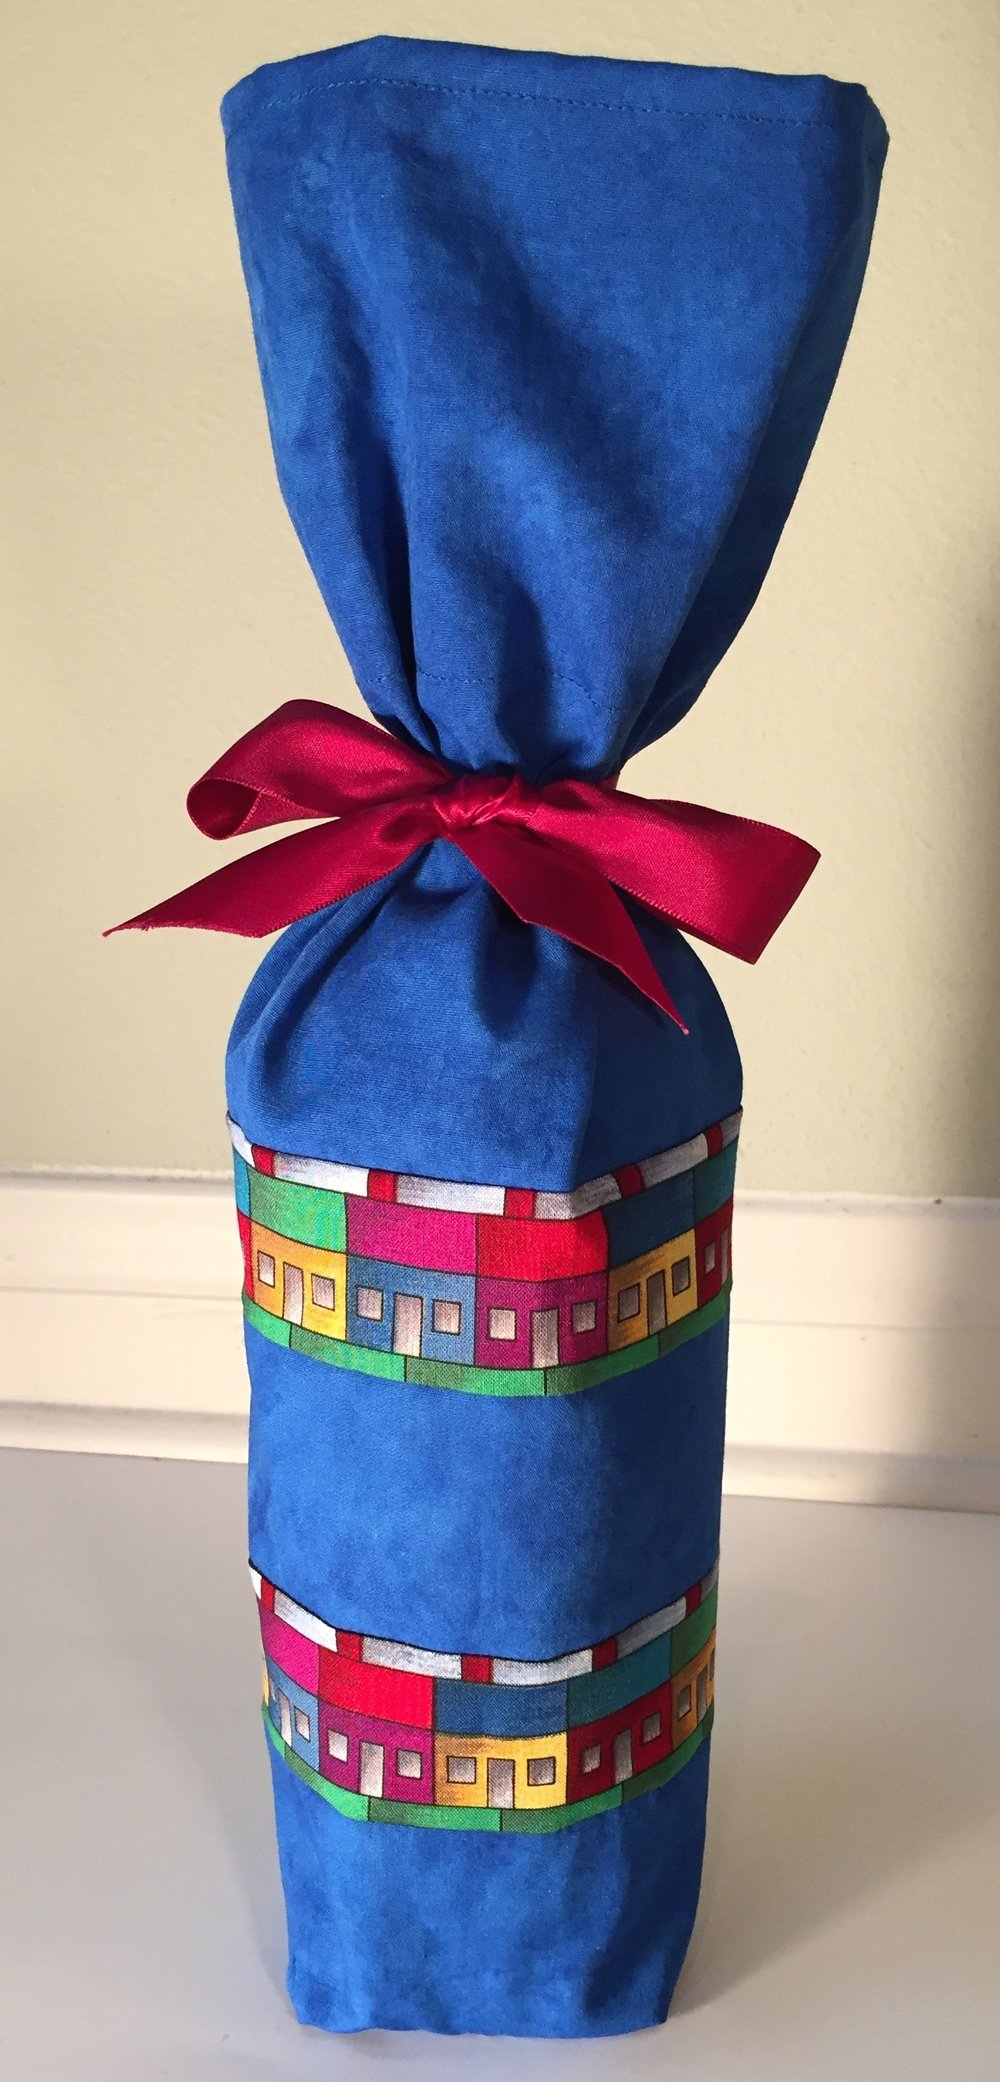 - I made my wine bottle gift bag using a tutorial I found on YouTube by Canadian quilter Brandy Lynn Maslowski.  It took less than 1/4 yard of fabric and 20